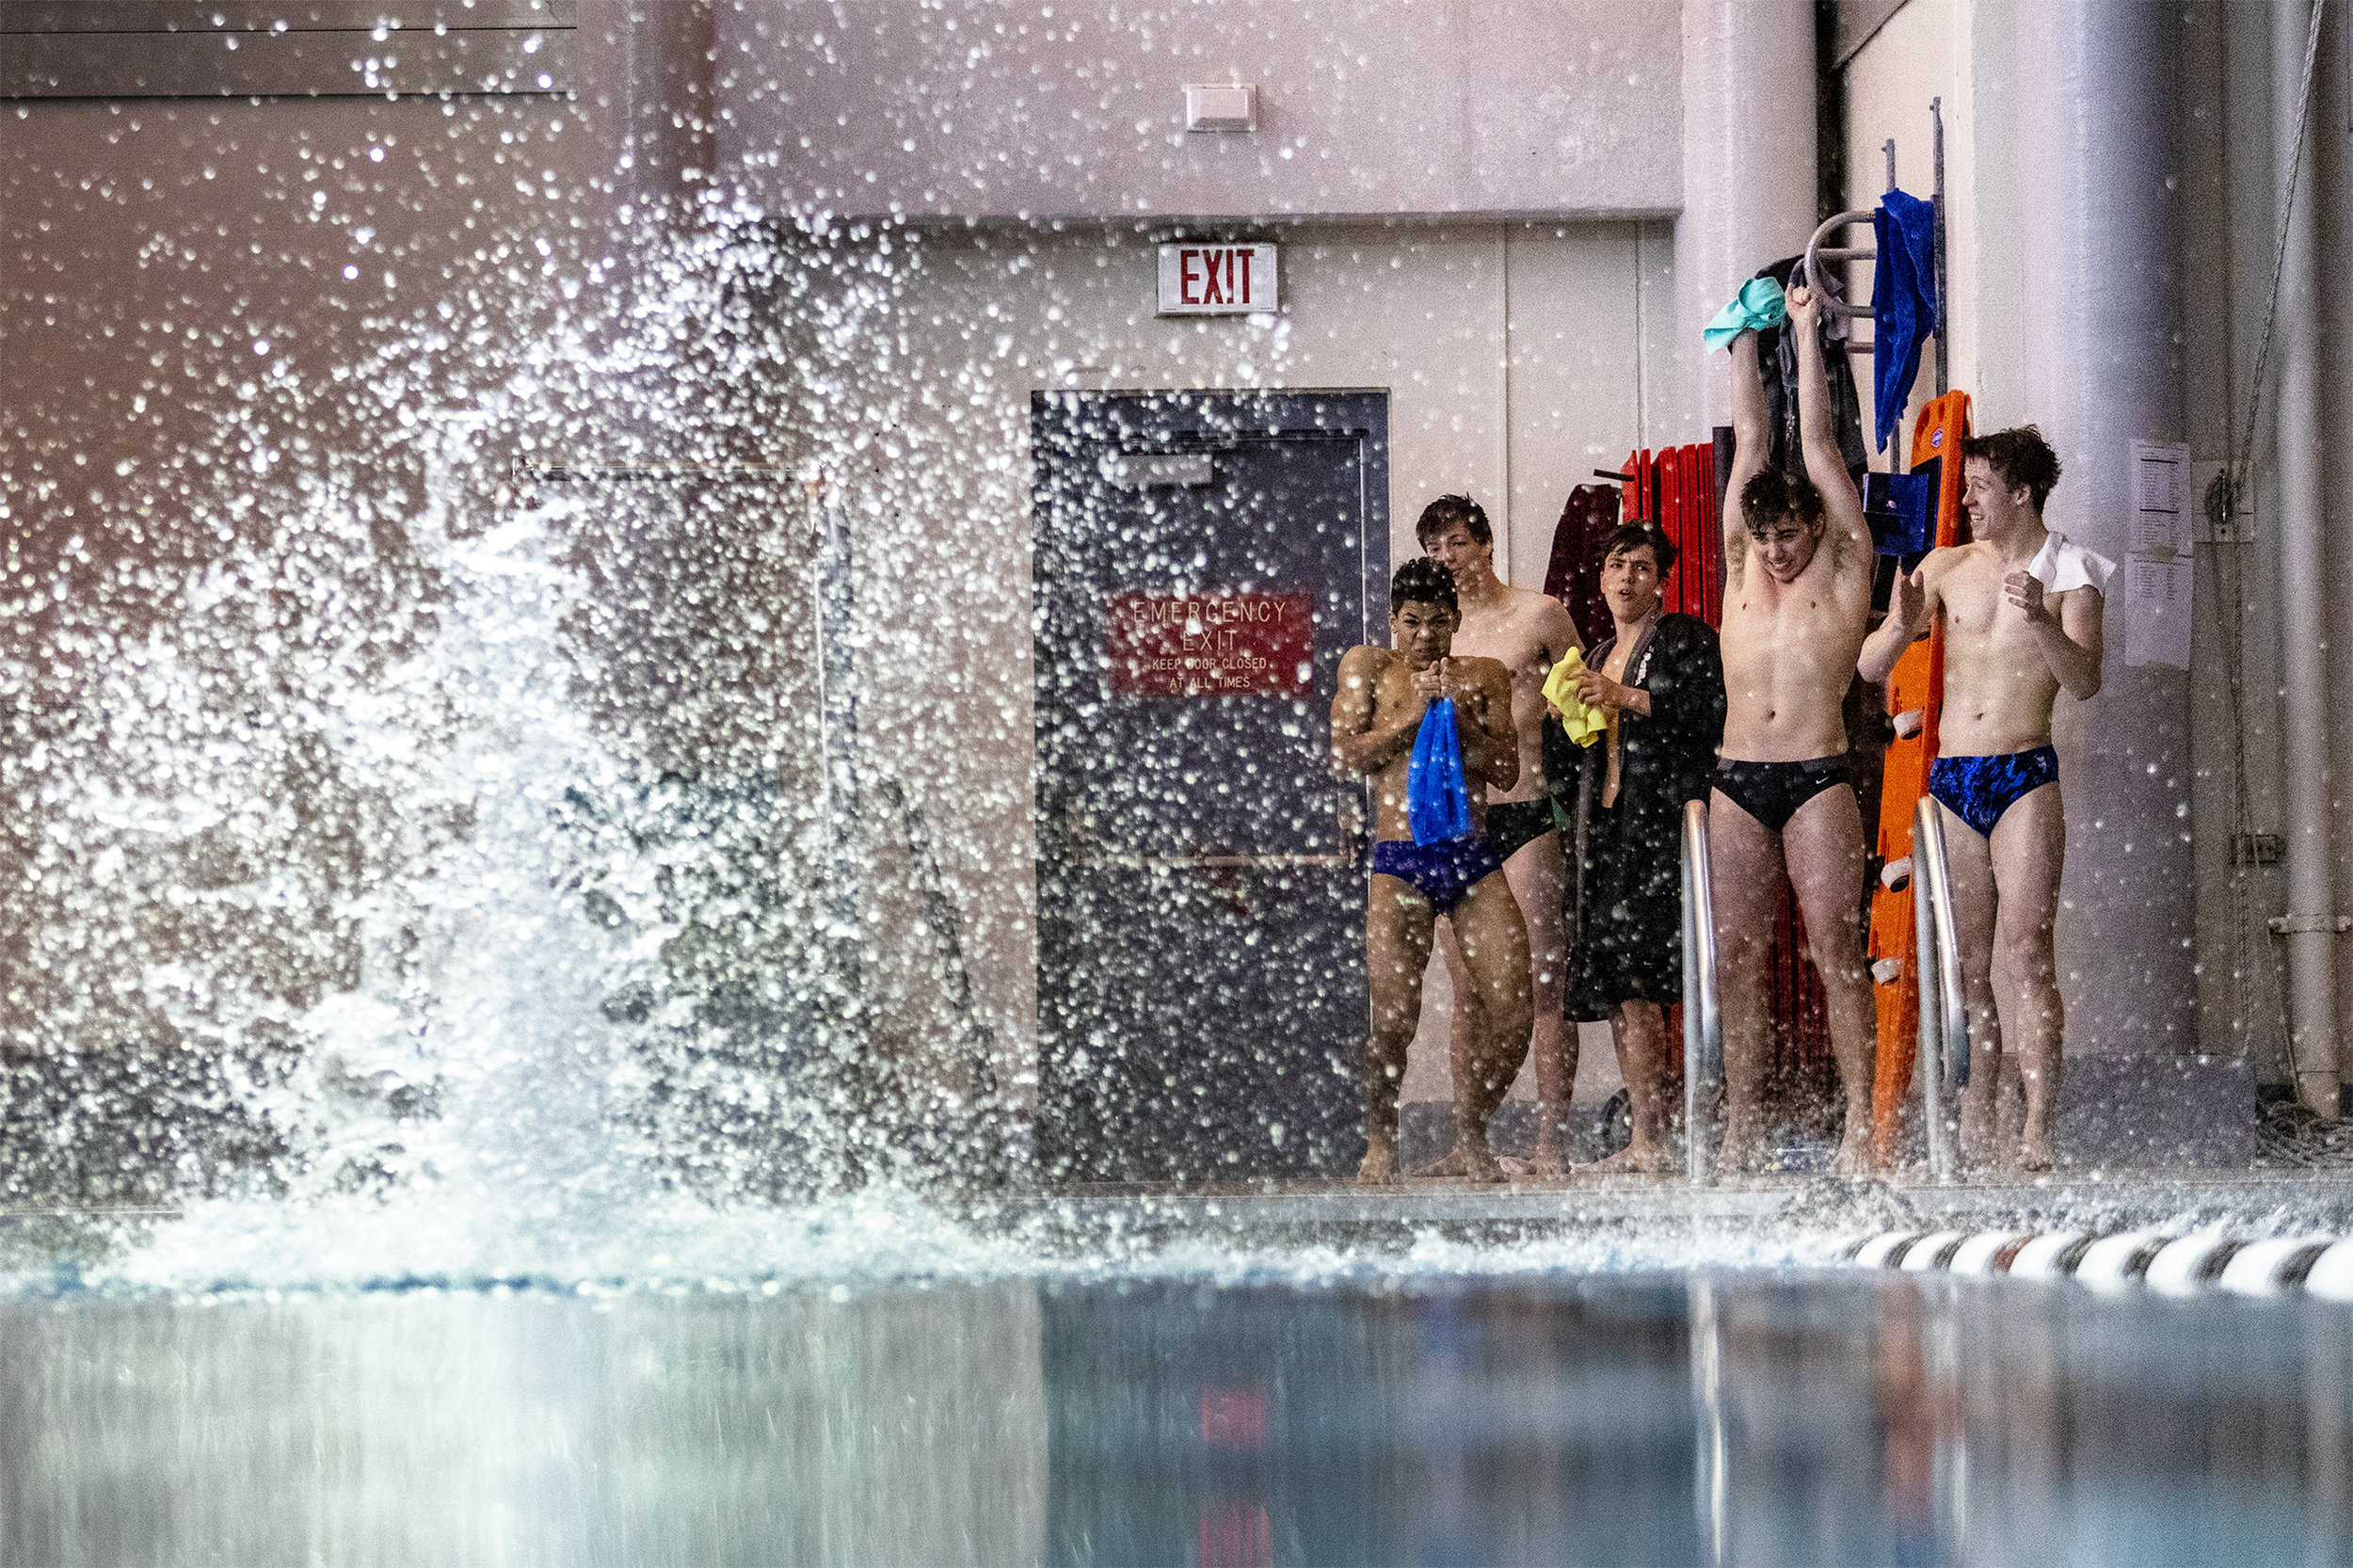 Divers react to a hard impact of another diver with the water at the Gillette Pre-Invite at the Campbell County Aquatic Center on Friday, Jan. 25, 2019.